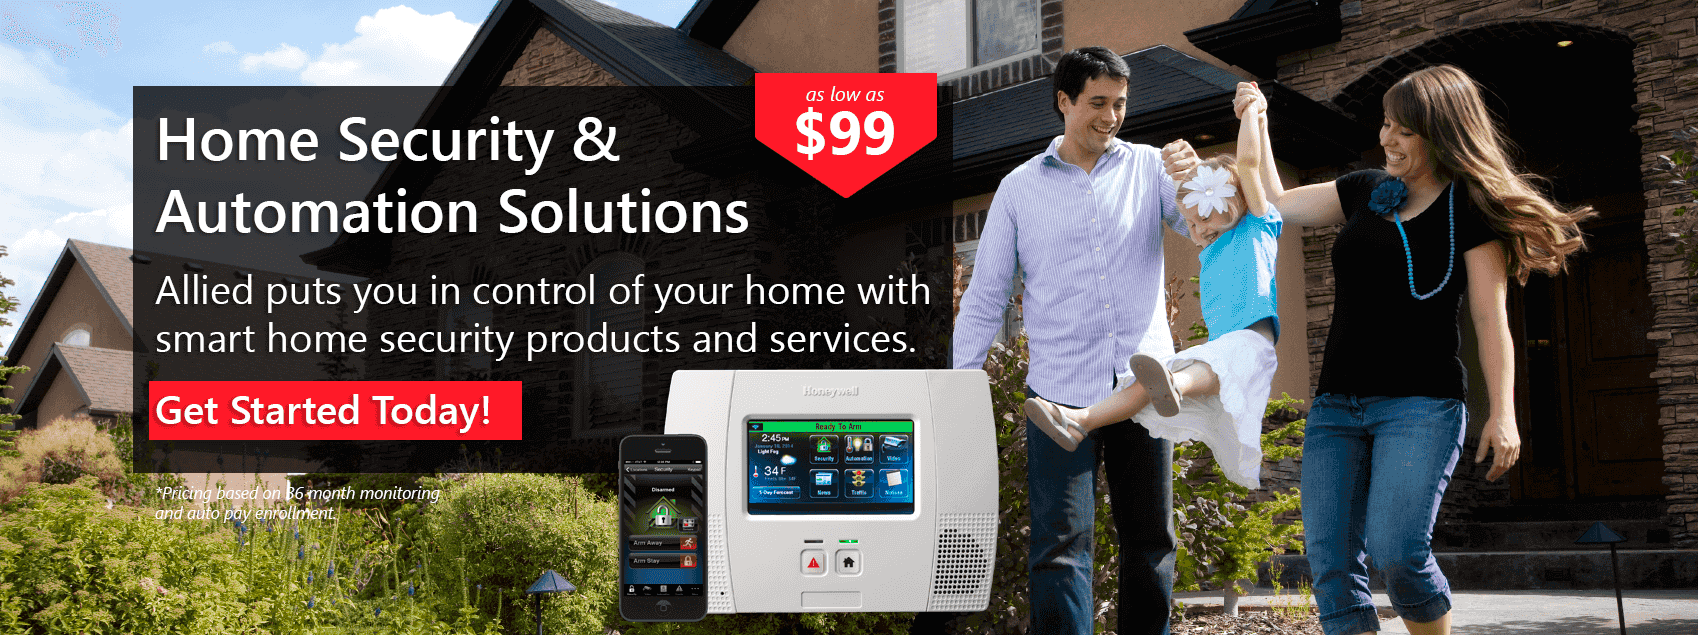 allied-home-automation-security-solutions